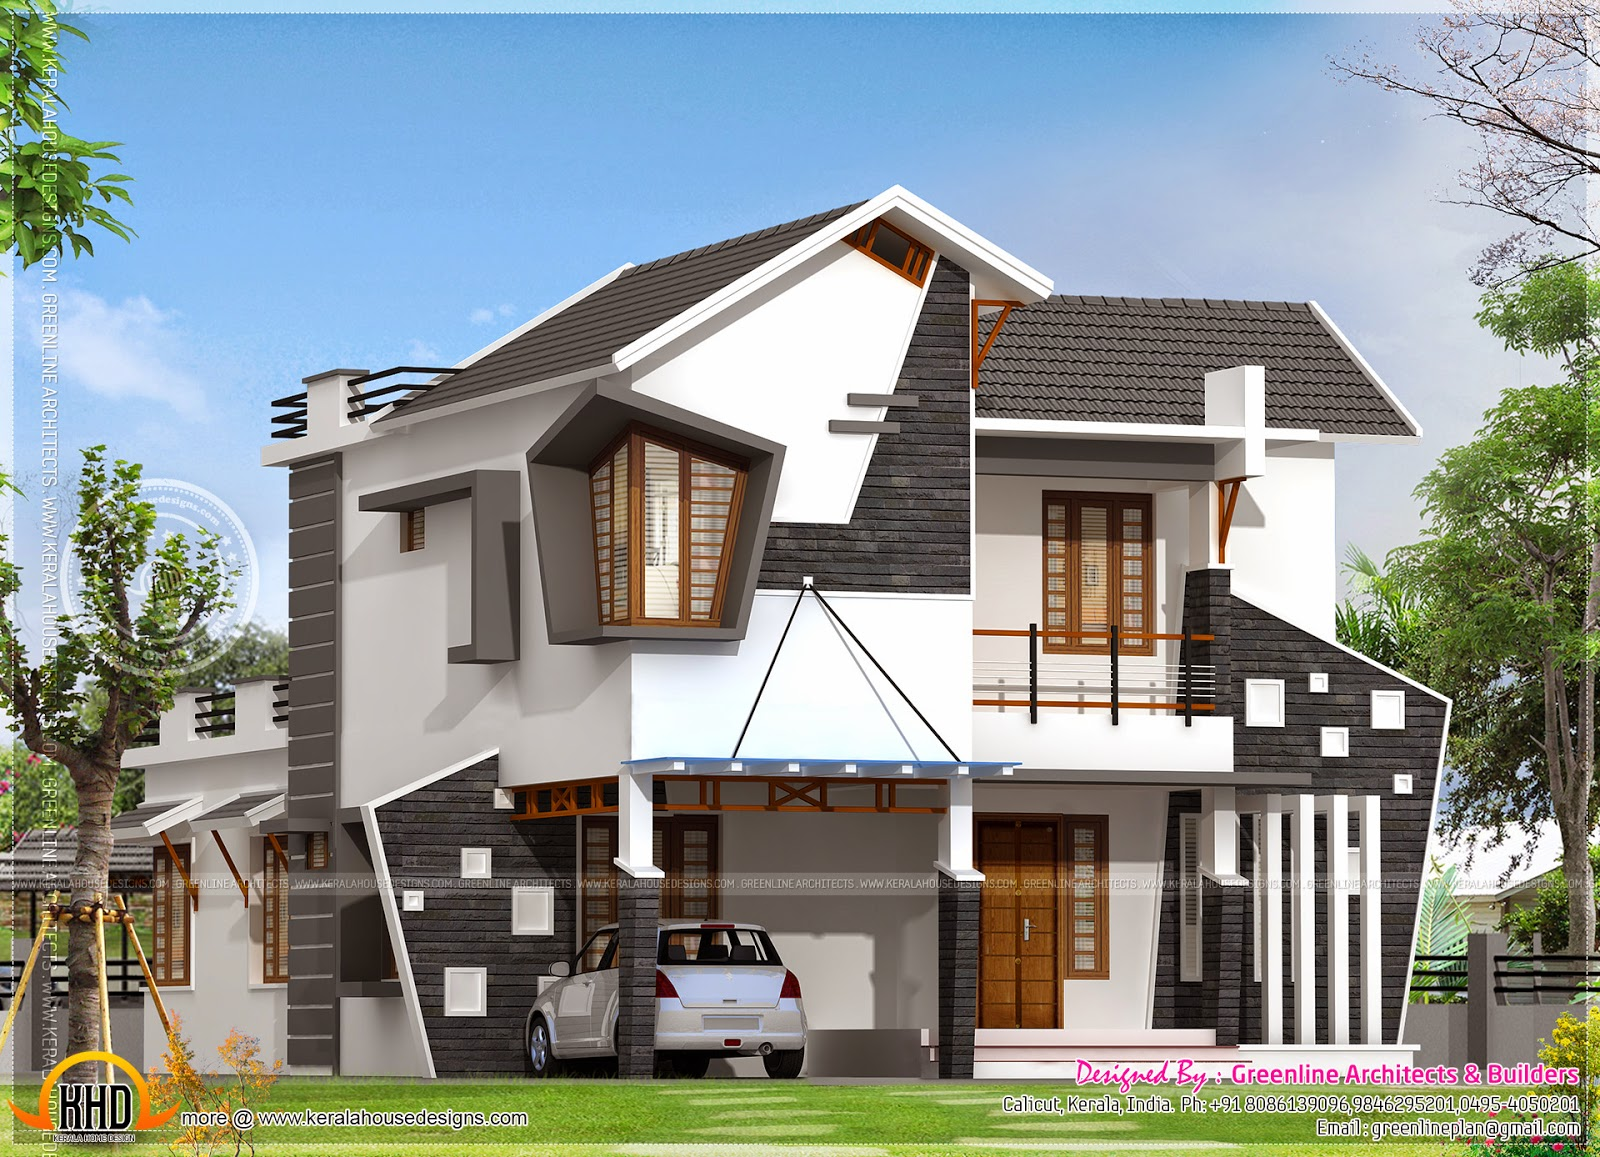 Unique house exterior in 2154 square feet kerala home Unique house designs